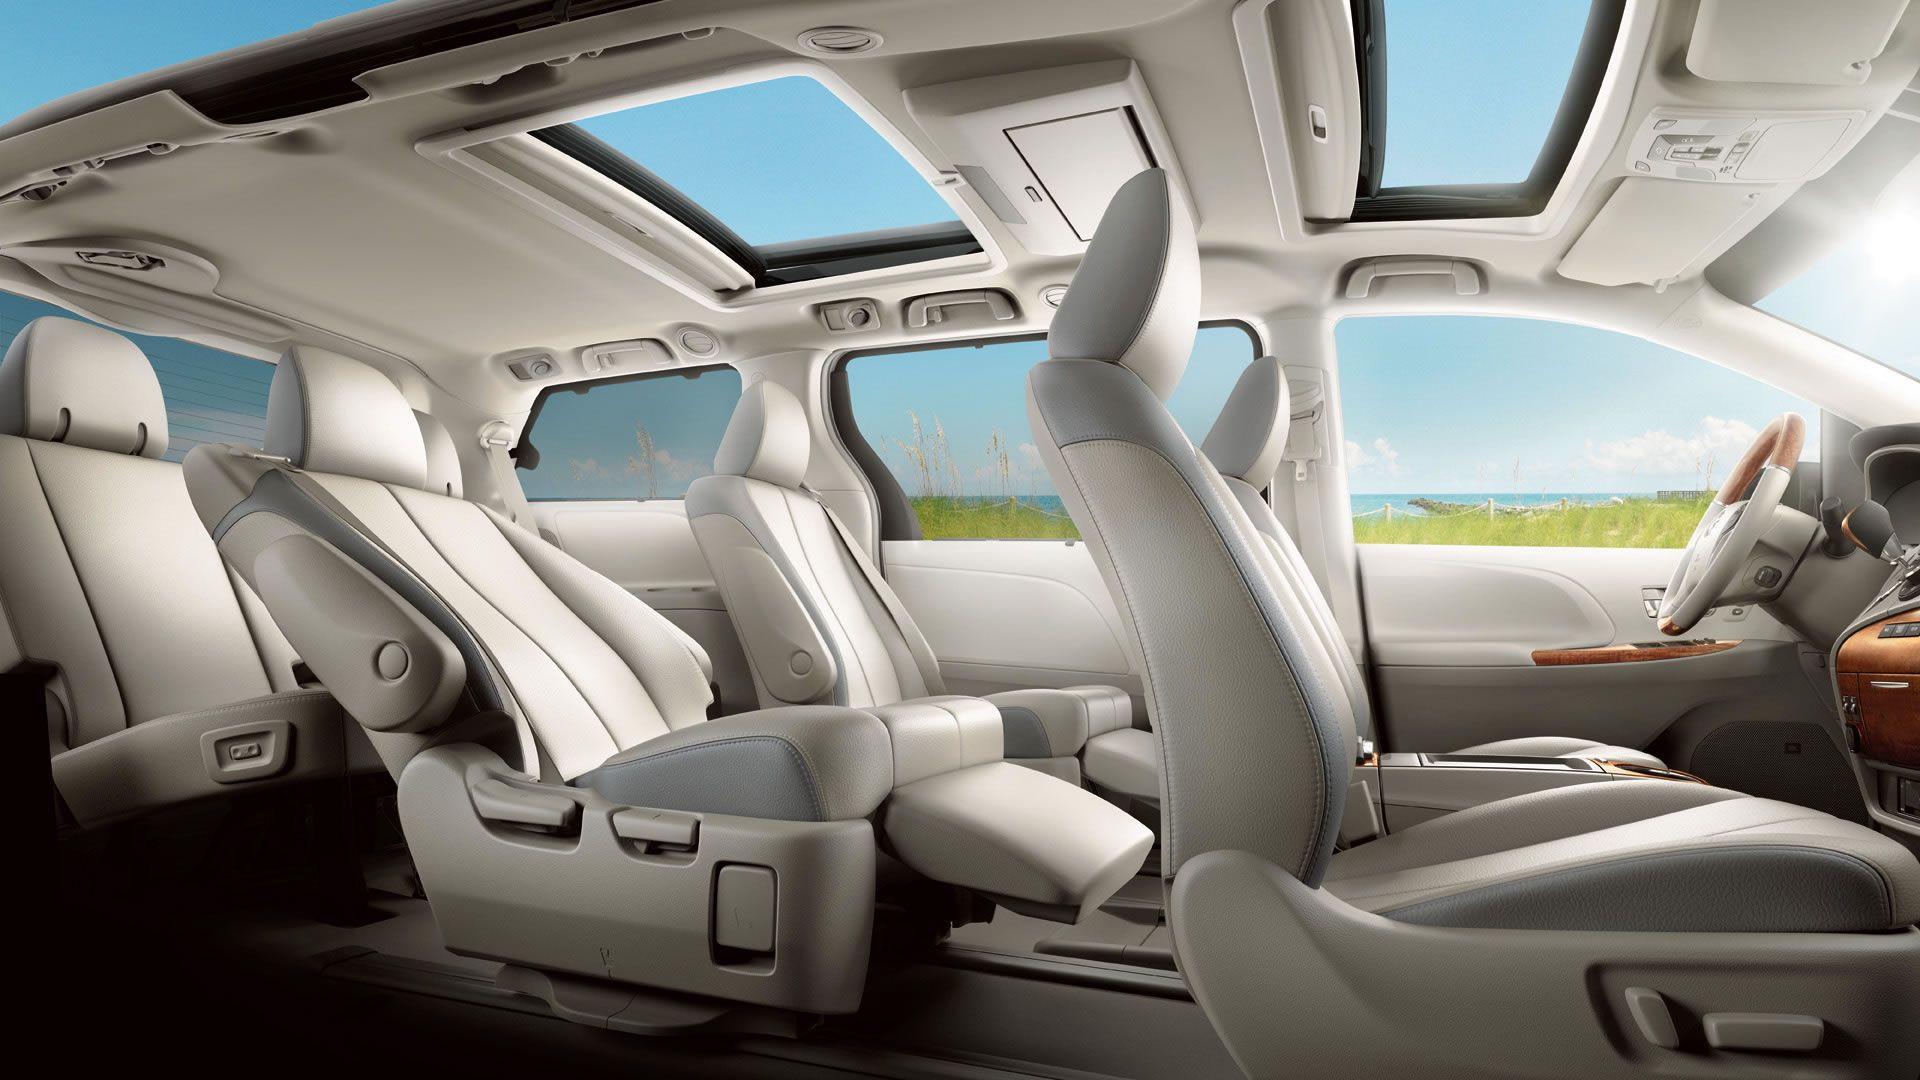 2014 toyota sienna usa car sunroof seats interior automobiles pinterest toyota cars. Black Bedroom Furniture Sets. Home Design Ideas